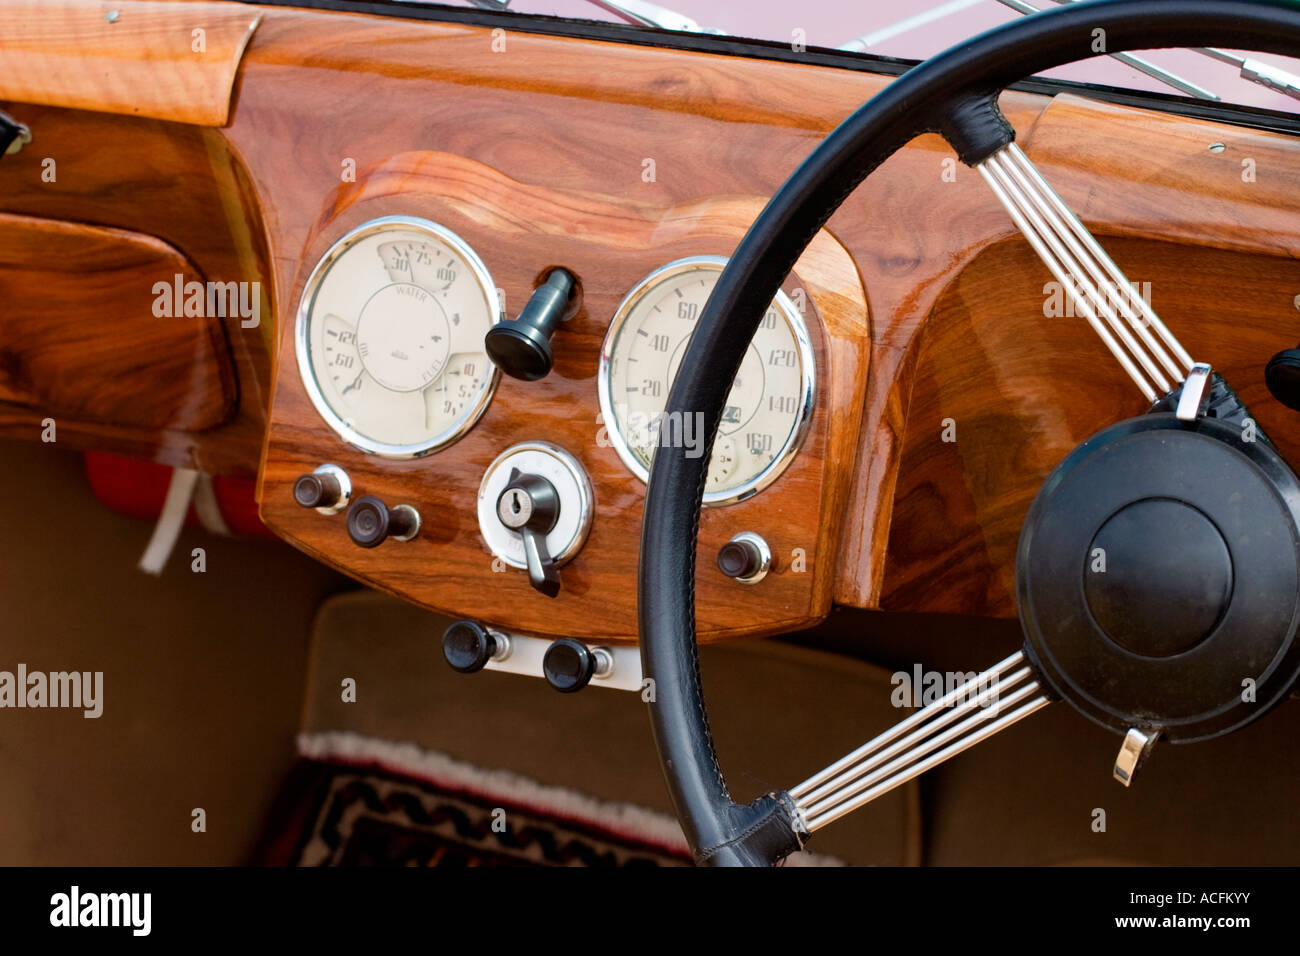 Wooden dashboard in a old car - Stock Image